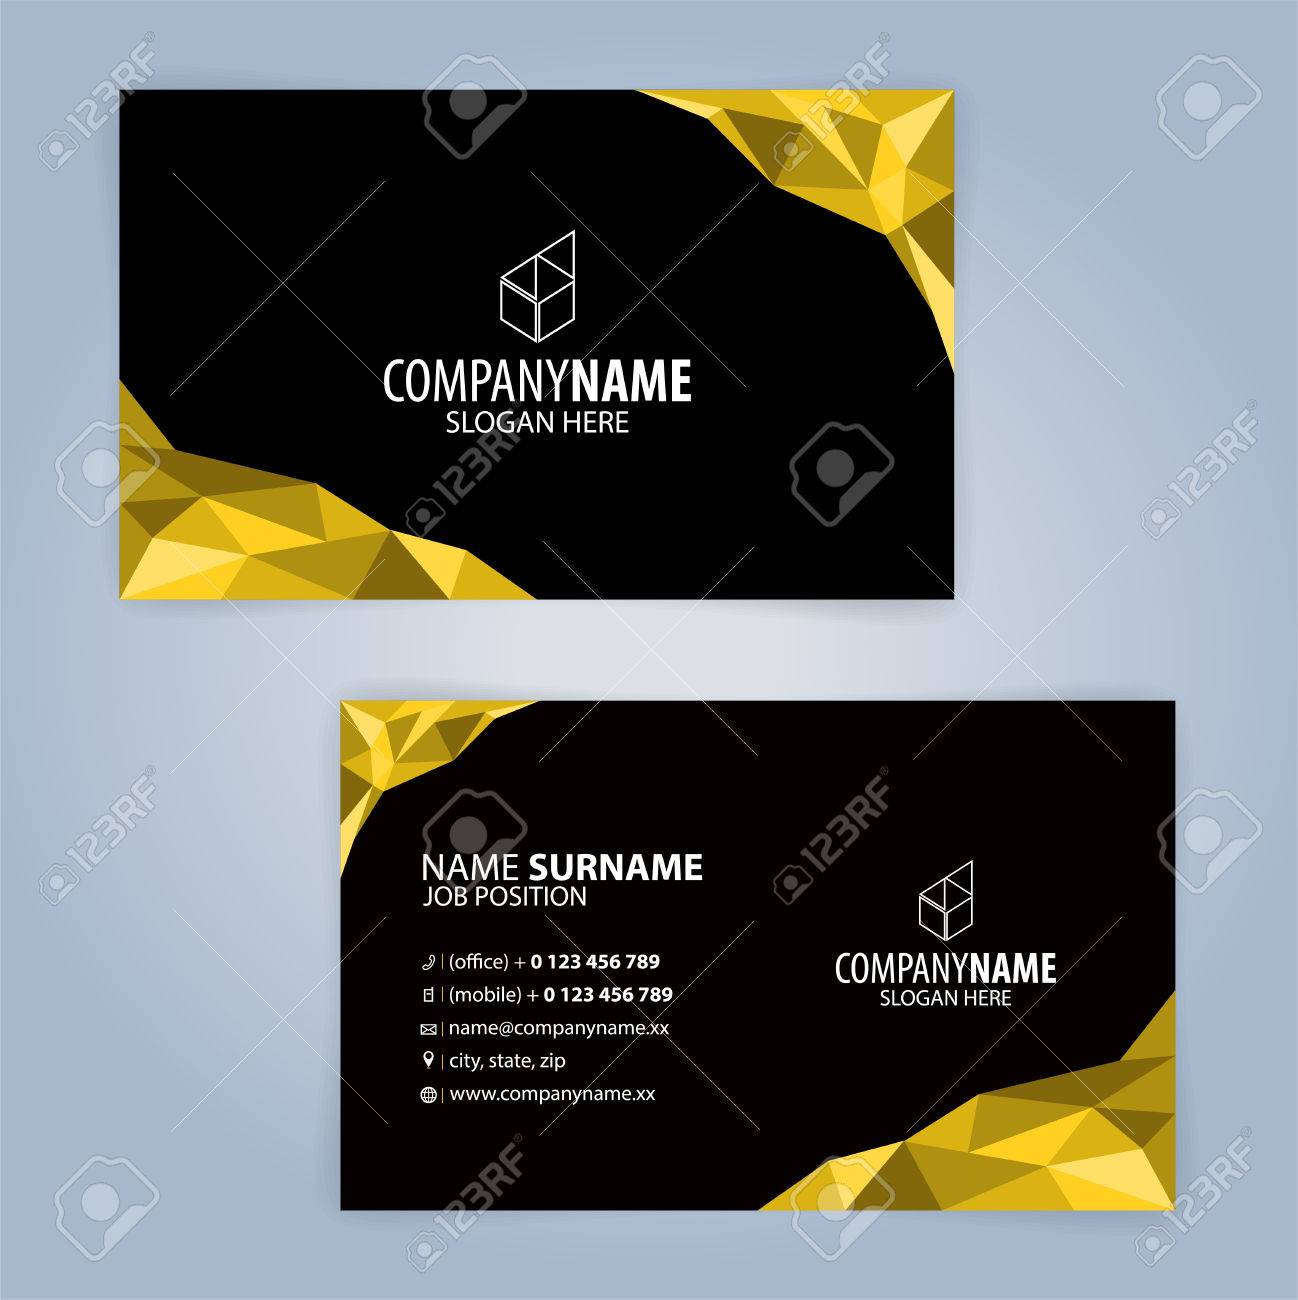 Yellow and black modern business card template illustration vector yellow and black modern business card template illustration vector 10 cheaphphosting